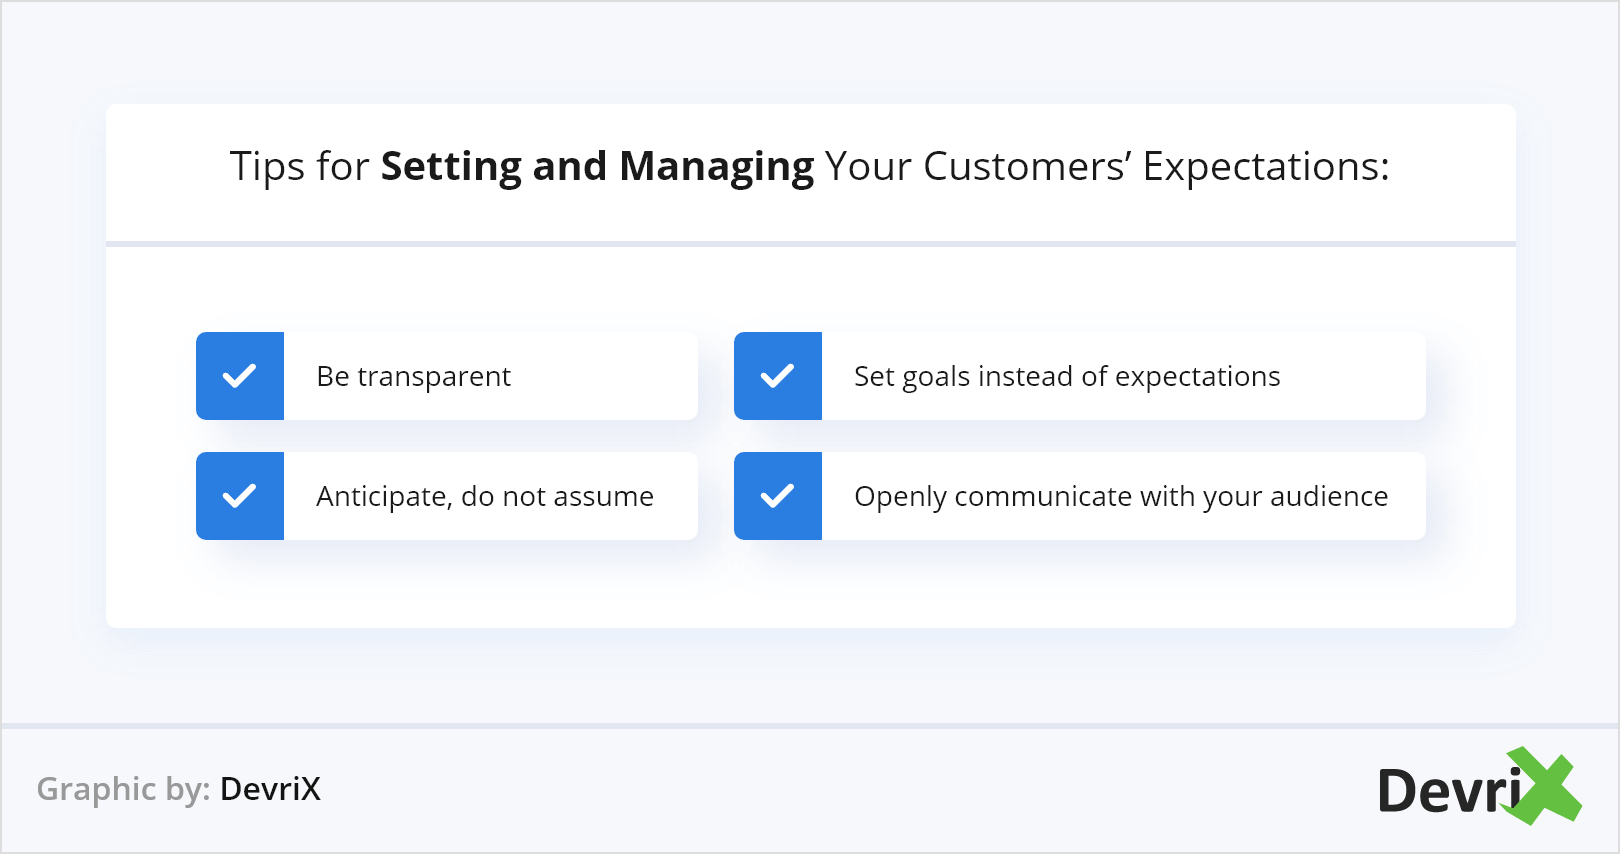 Tips for Setting and Managing Your Customers' Expectations@2x